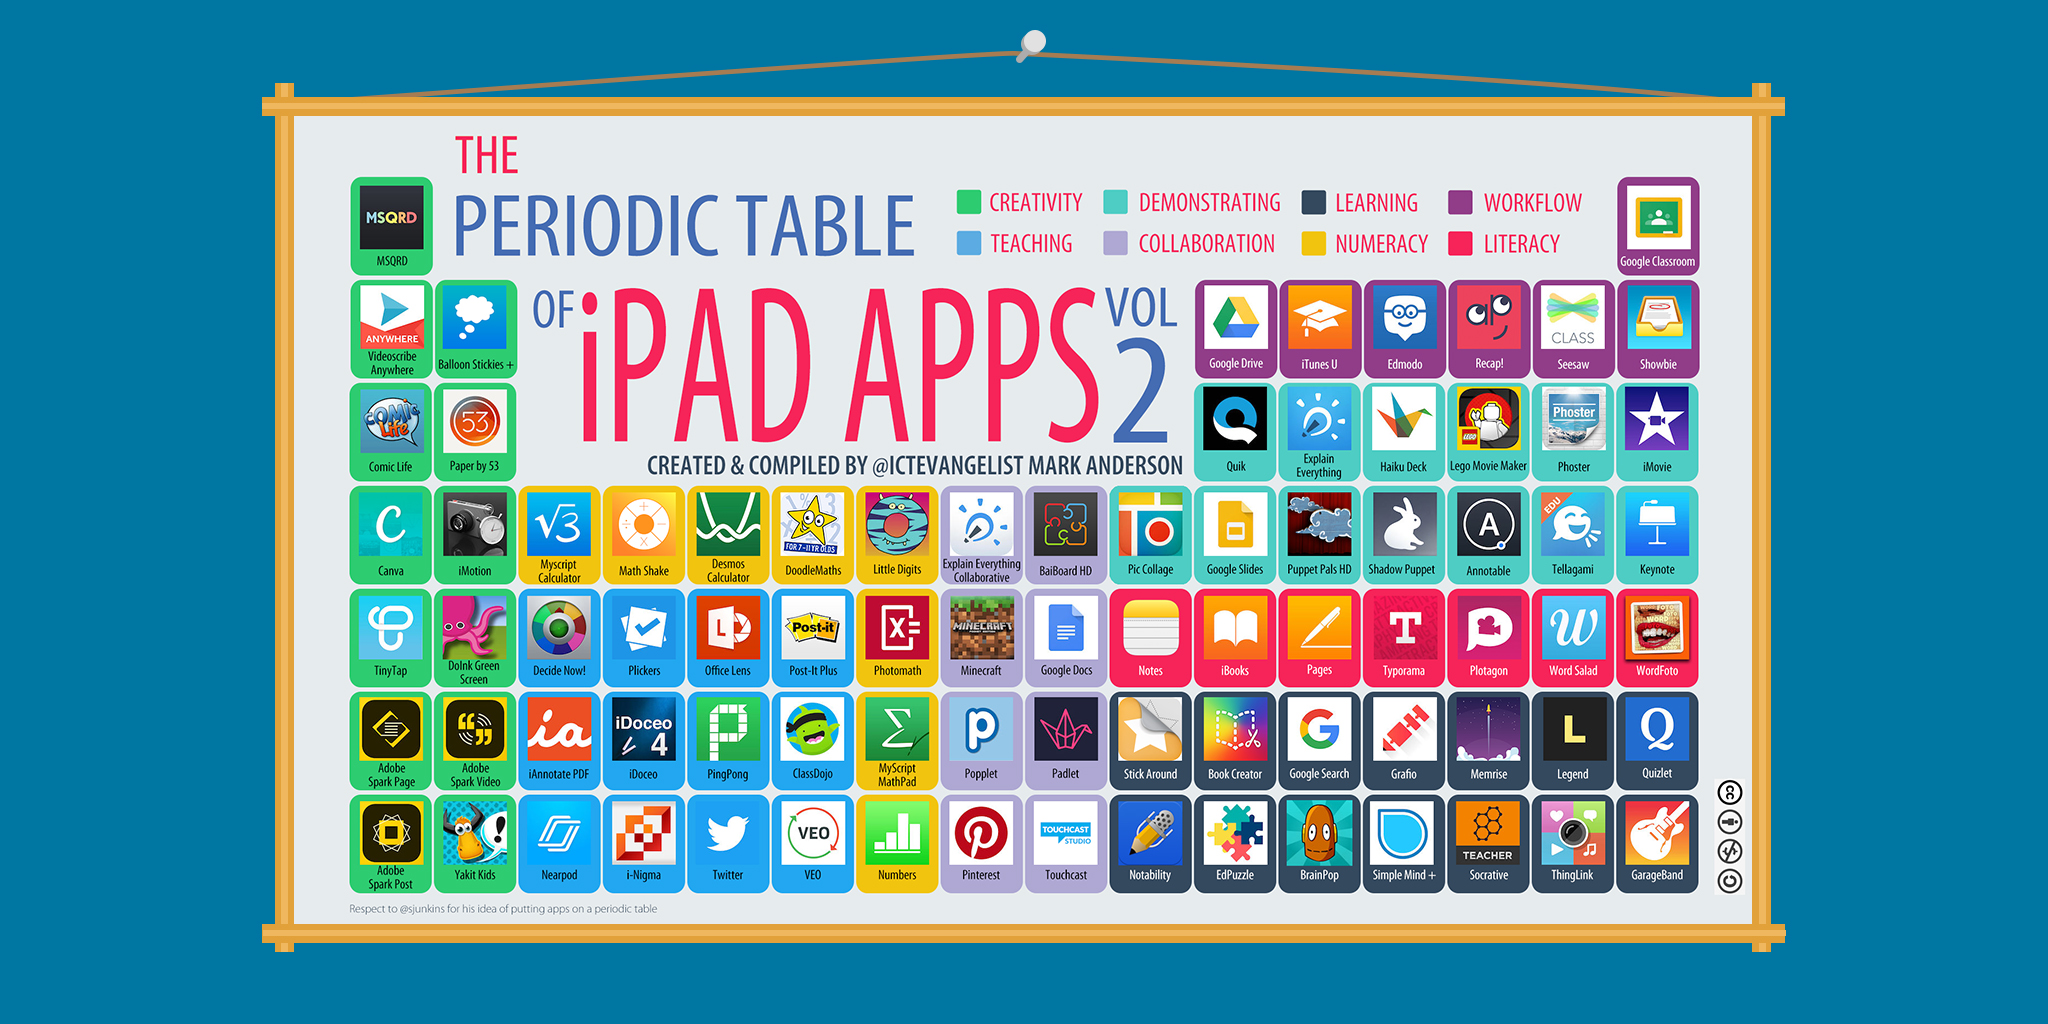 iPad apps for teachers